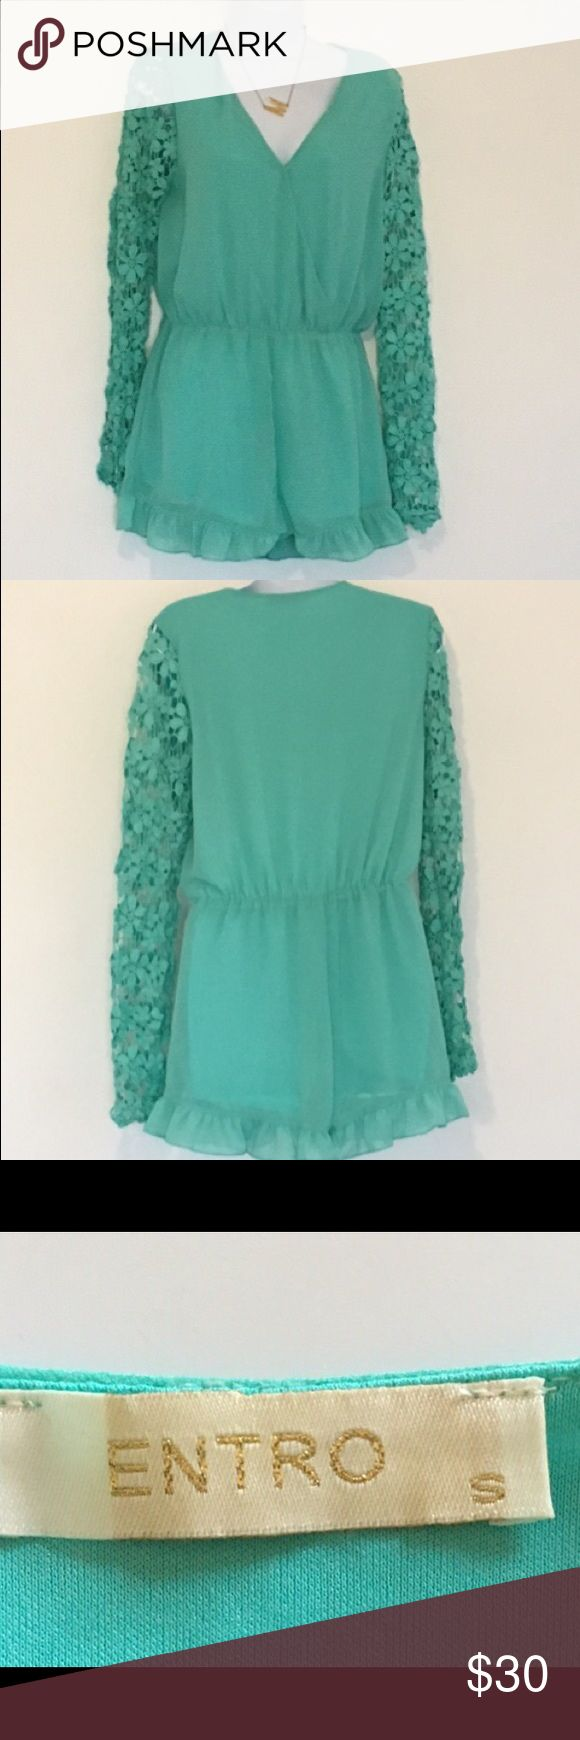 Teal romper with floral see through sleeves Adorable romper! Super flirty and perfect dressed up with wedges and a clutch or casual sandals. Perfect date outfit! Beautiful teal color and ruffle detail on bottom of shorts. Sleeves are see through with floral detail. Made by entro size small entro Pants Jumpsuits & Rompers